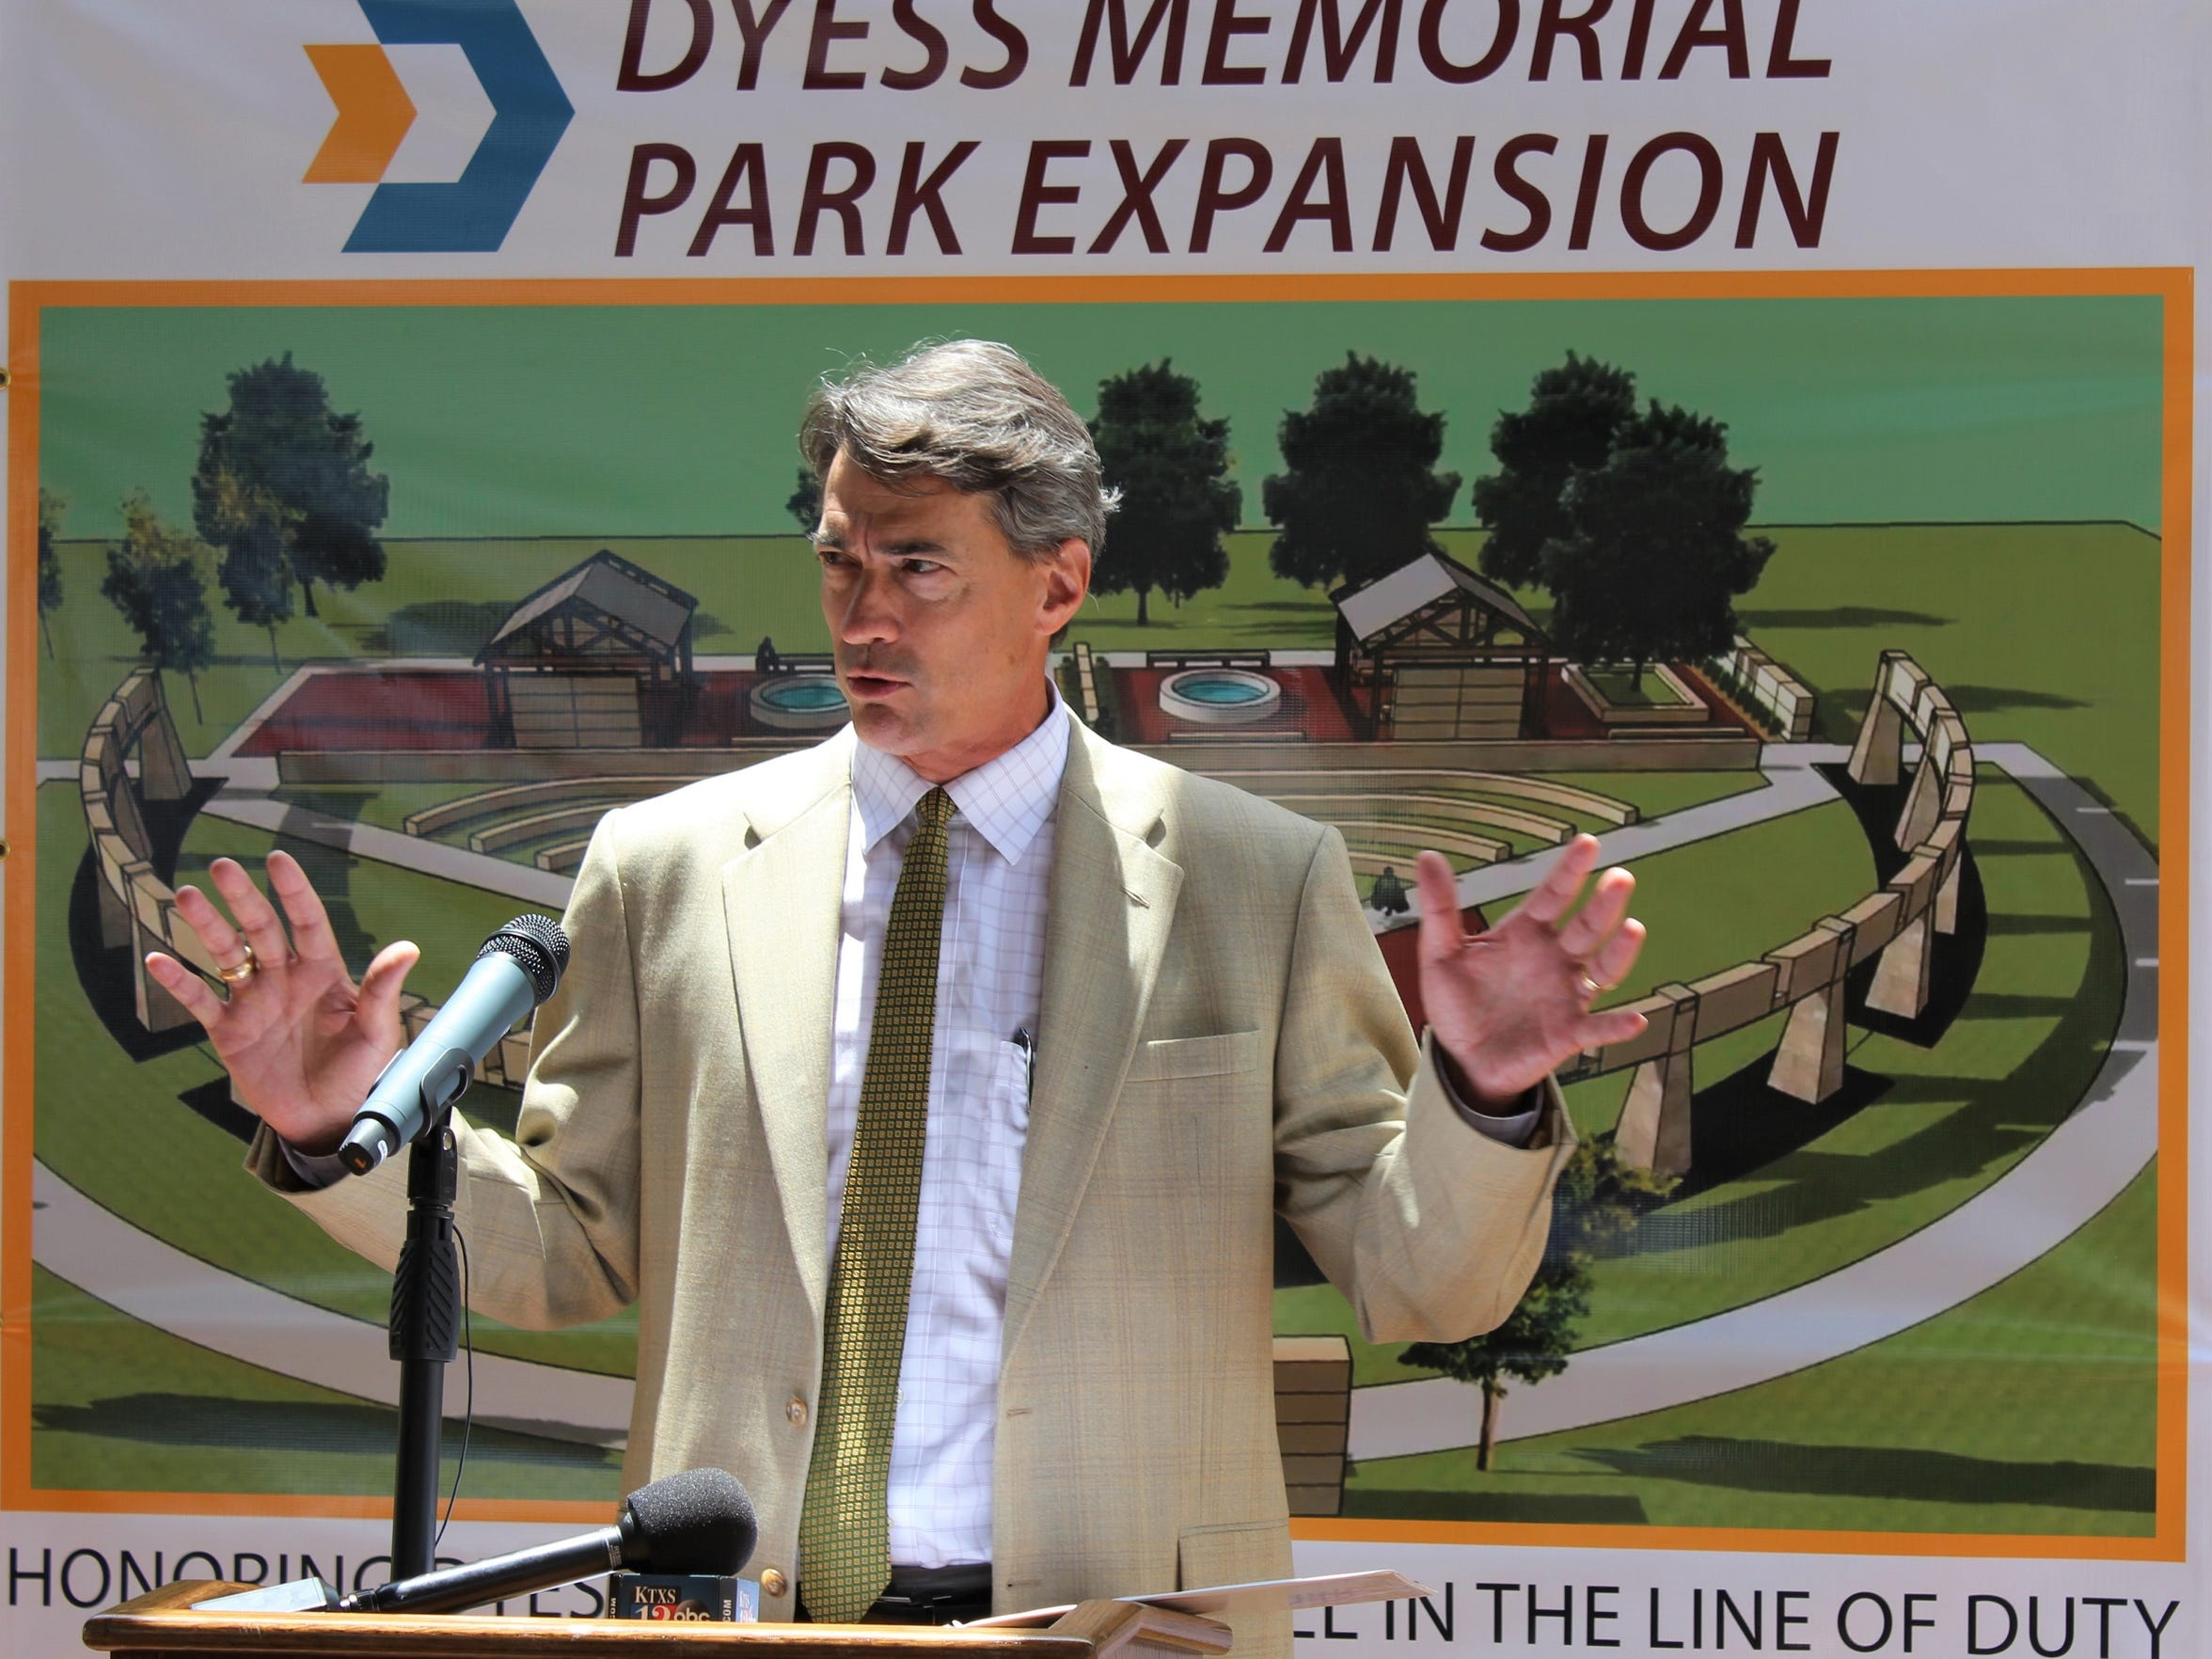 Landscape architect Mitch Wright of Austin talks about how the position of the sun will highlight memorials to fallen Dyess Air Force Base personnel at the expanded Dyess Memorial Park.  The memorials are scheduled to be completed in 2019.